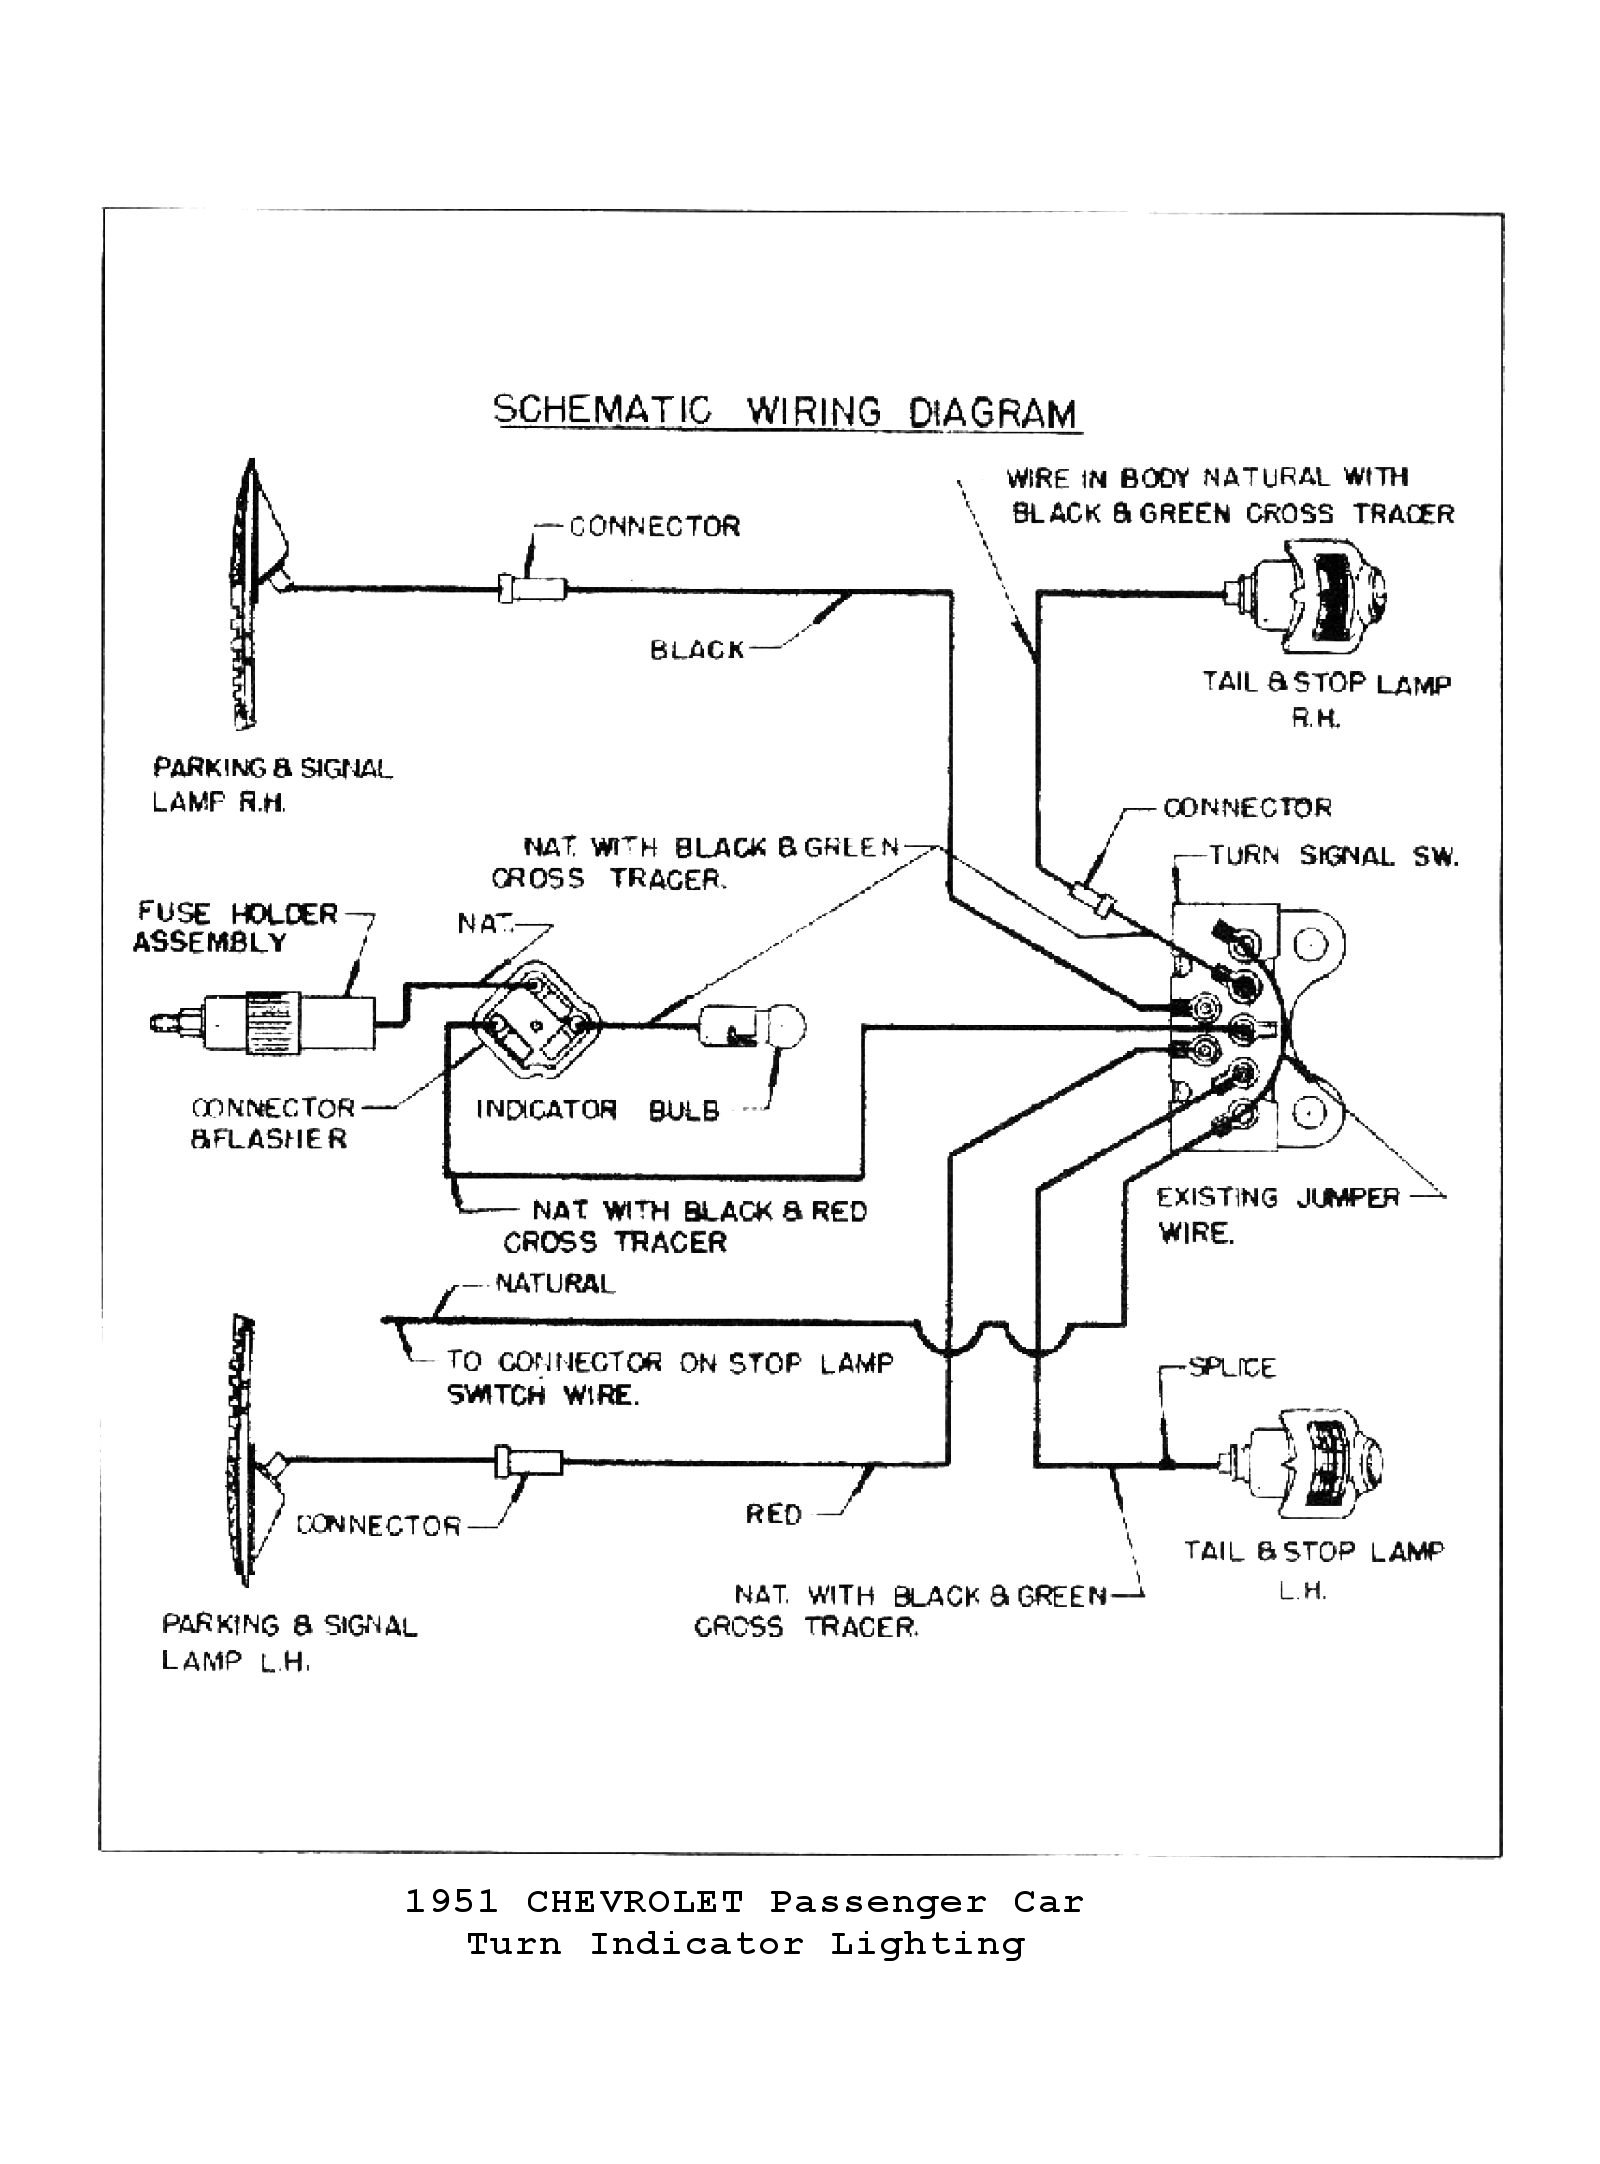 hight resolution of 53 chevy truck light wire diagram wiring diagram wiring diagram for 1953 chevy pickup truck